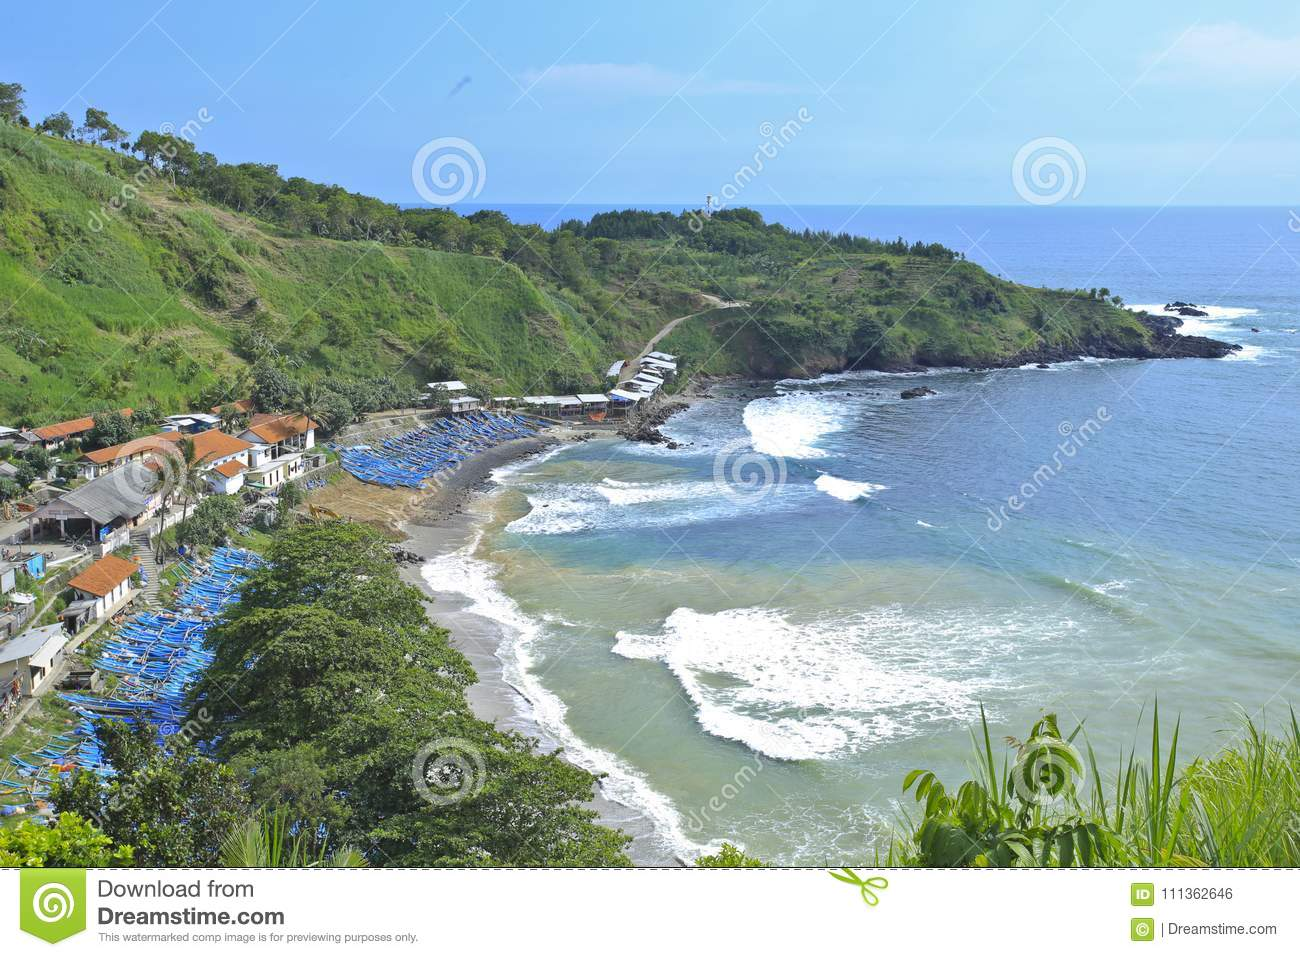 Menganti Beach Coastline Area Kebumen Central Java Indonesia View From Above